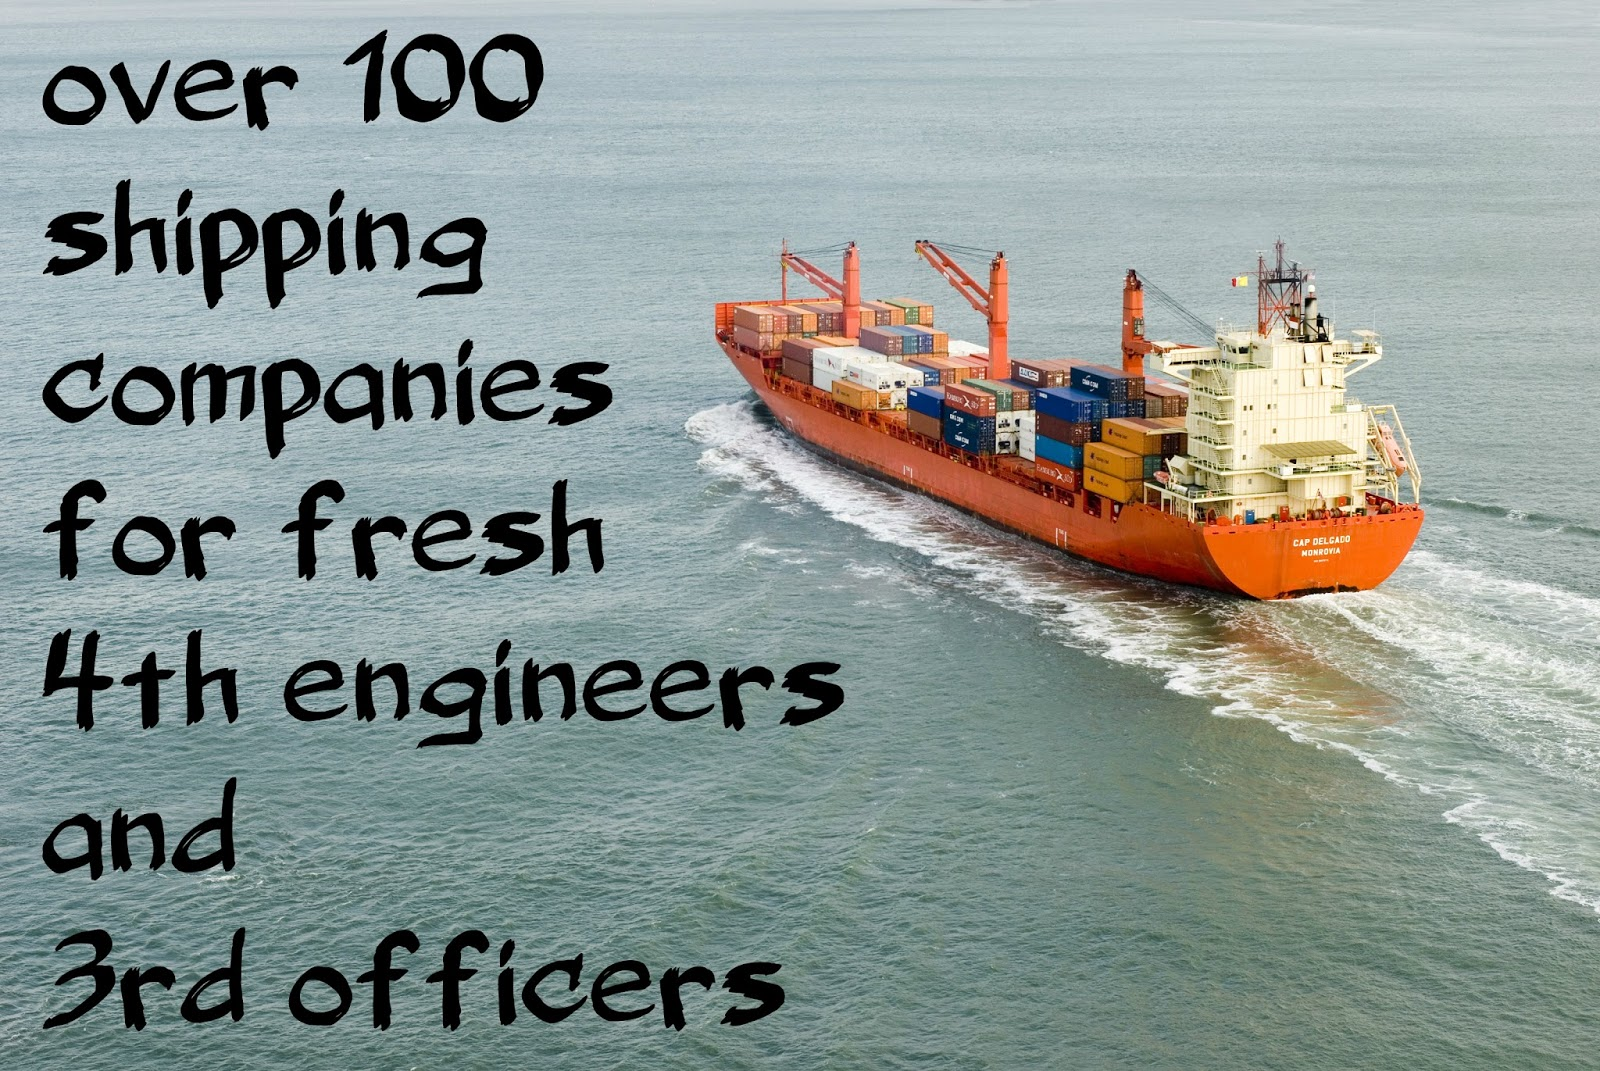 Shipping companies for fresh 4th engineers and 3rd officers !!